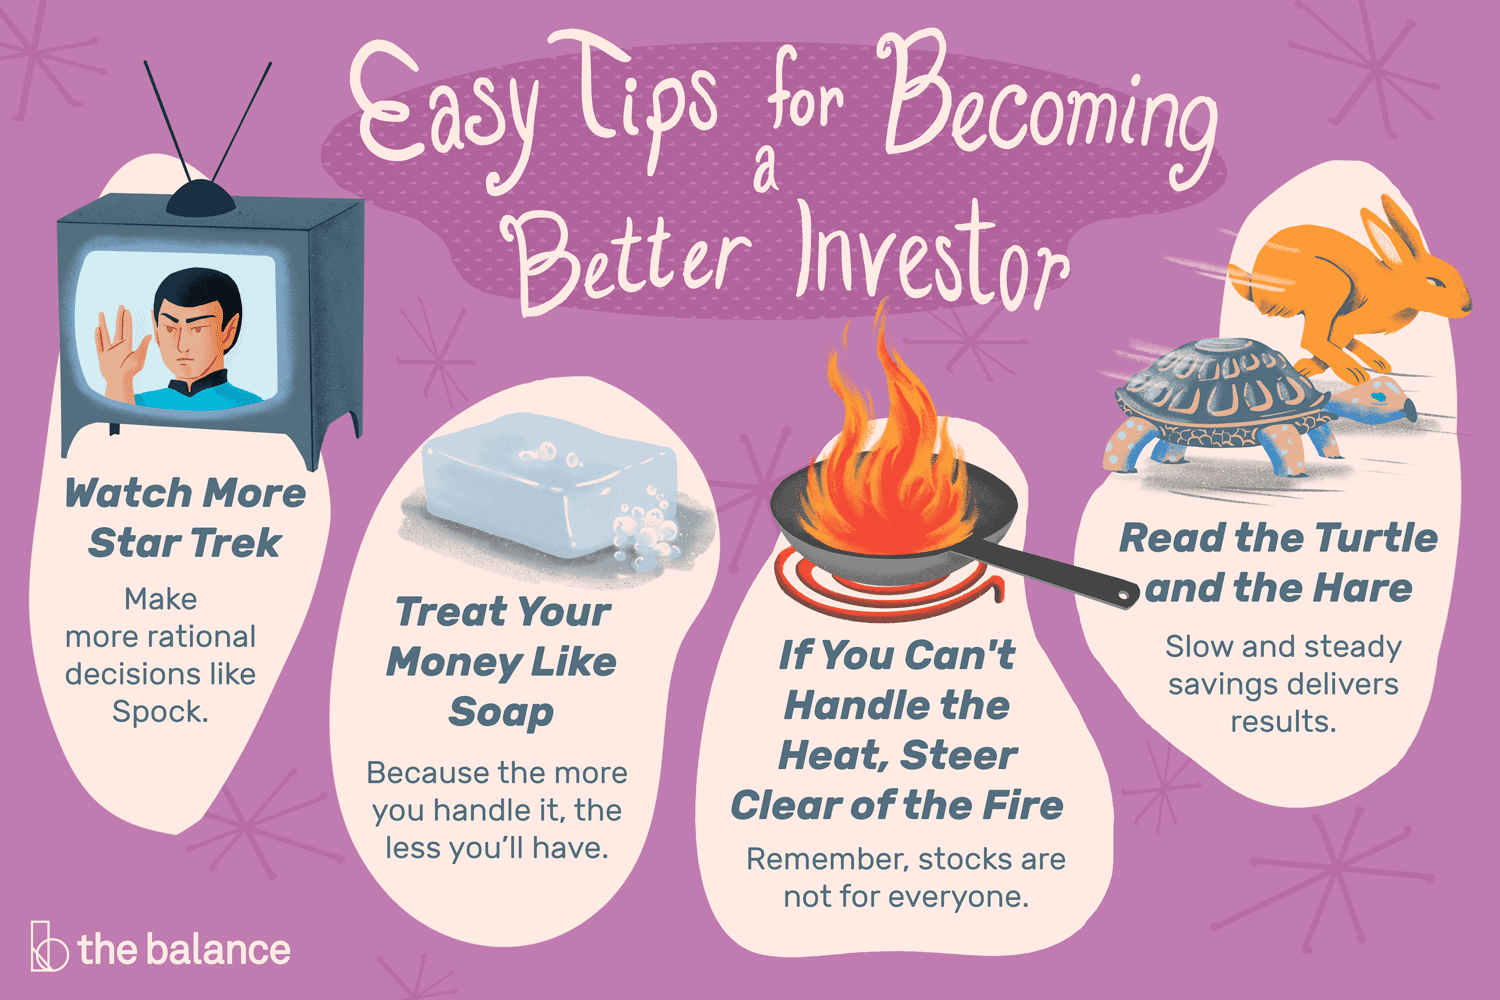 Learn How to Become a Better Investor